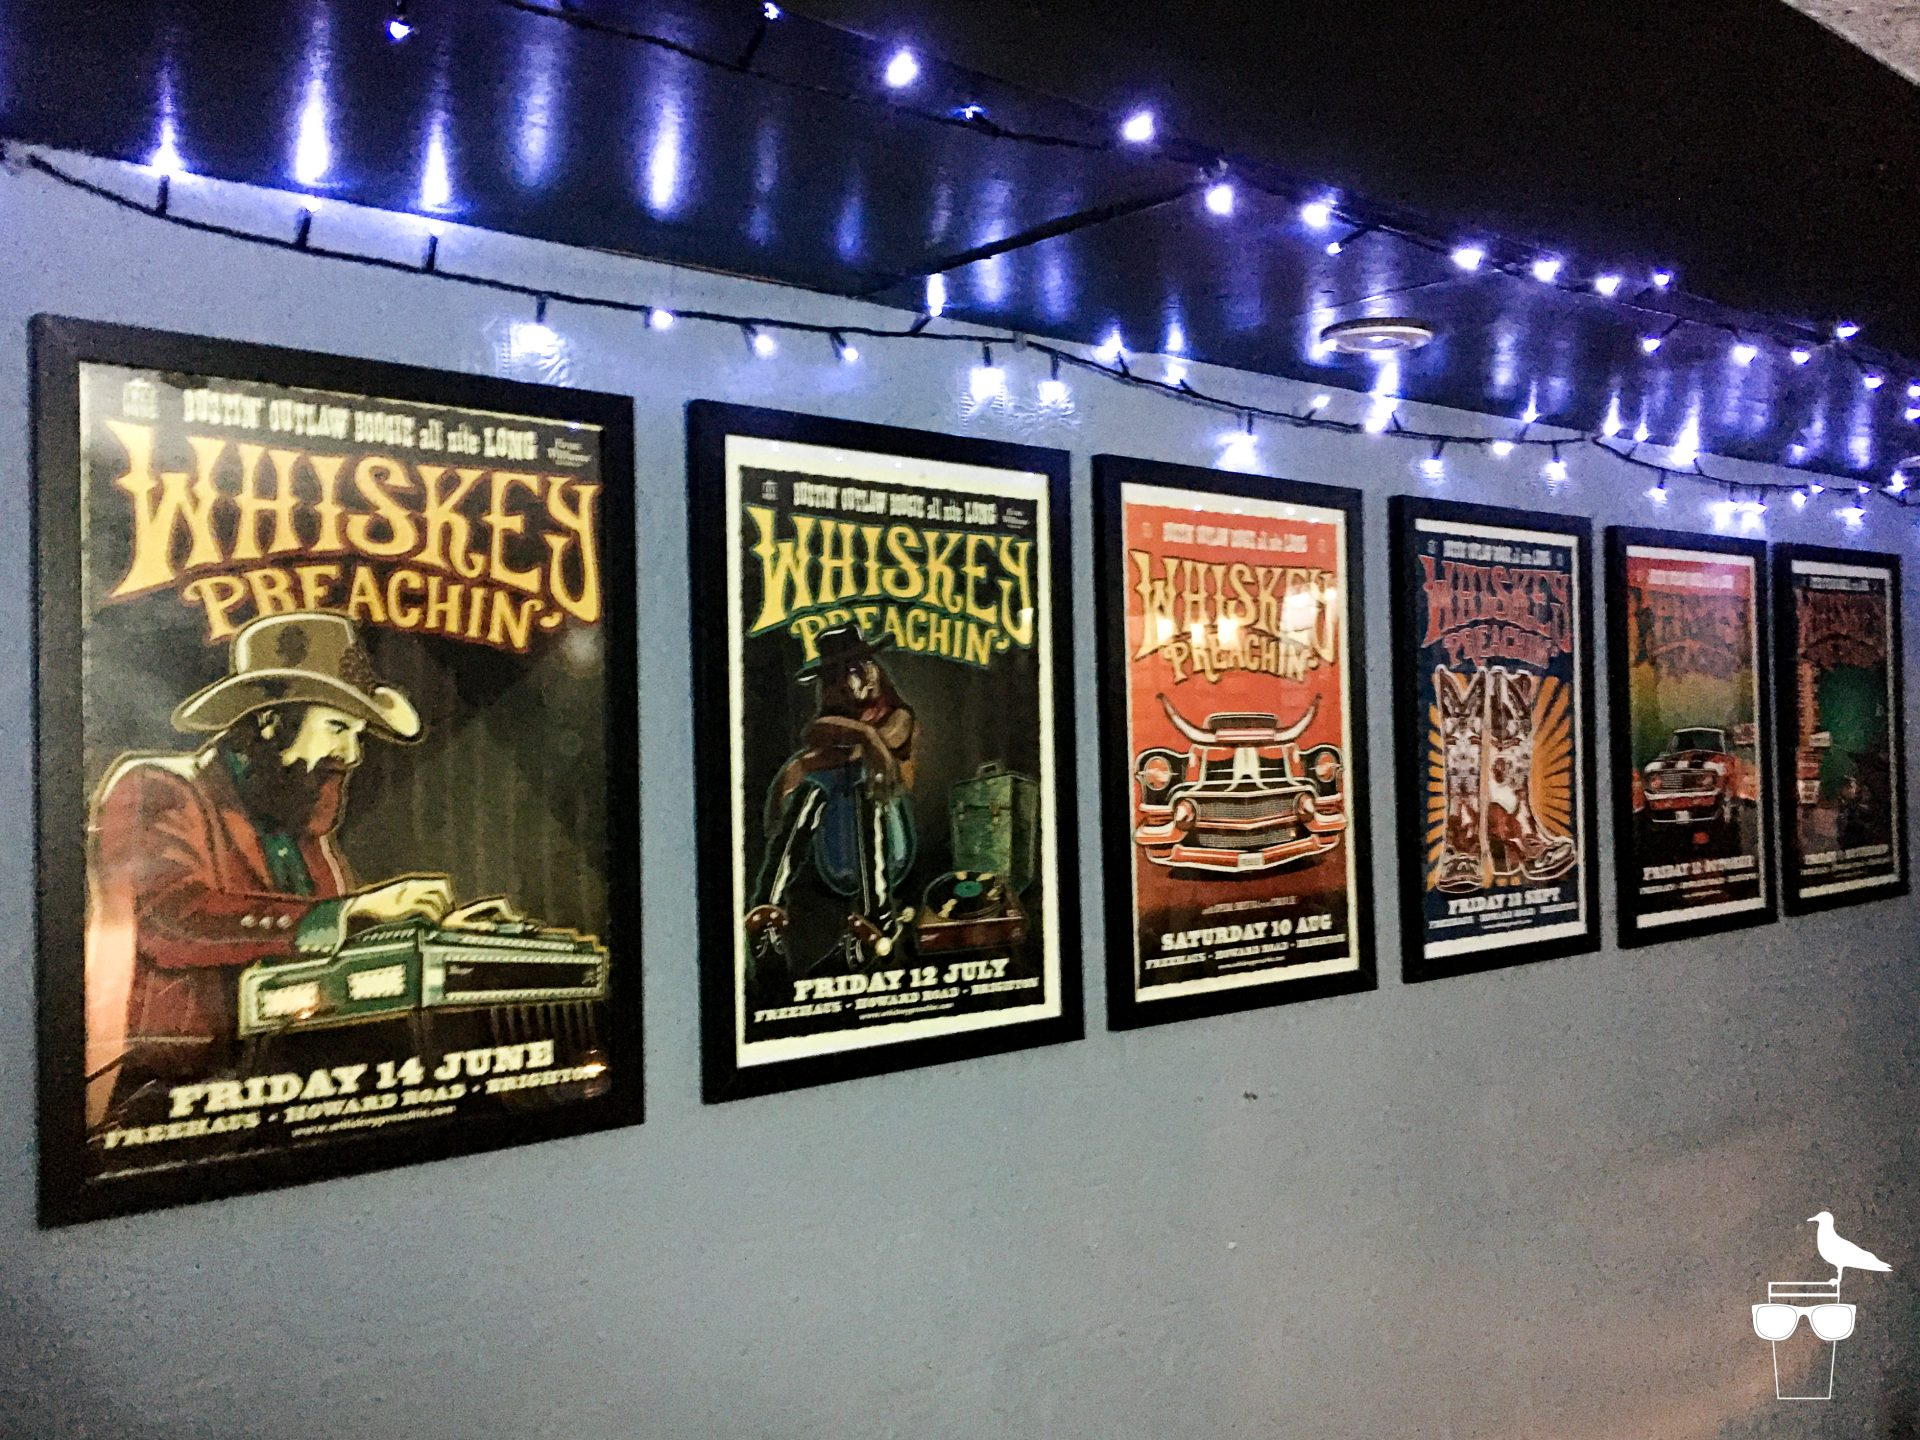 freehaus pub brighton whiskey preachin' posters